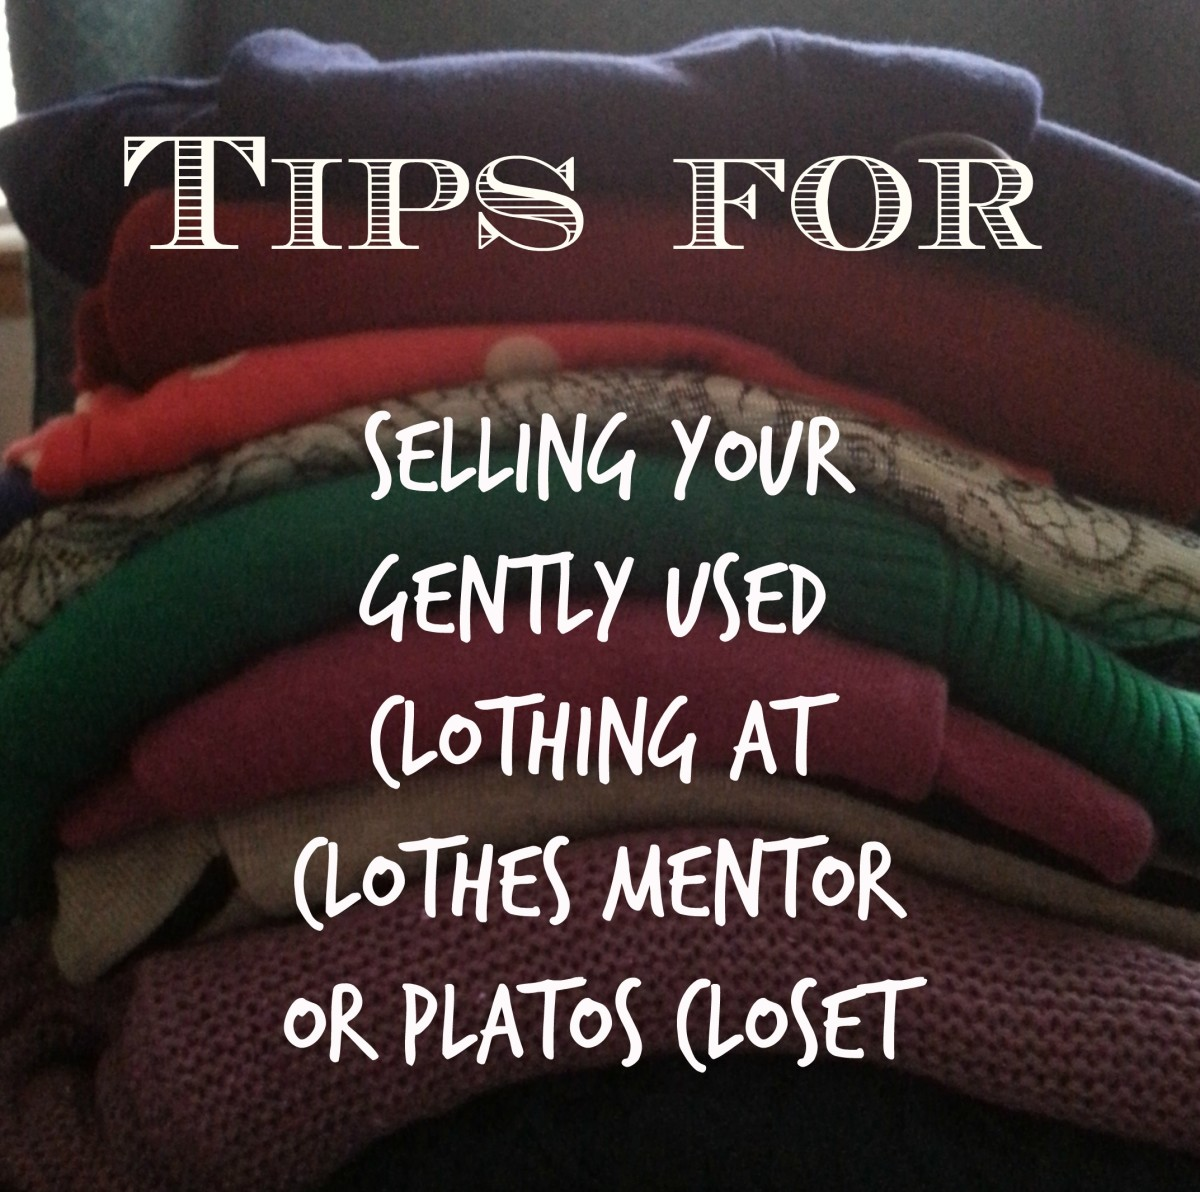 Tips for Selling Your Gently Used Clothing at Clothes Mentor or Plato's Closet